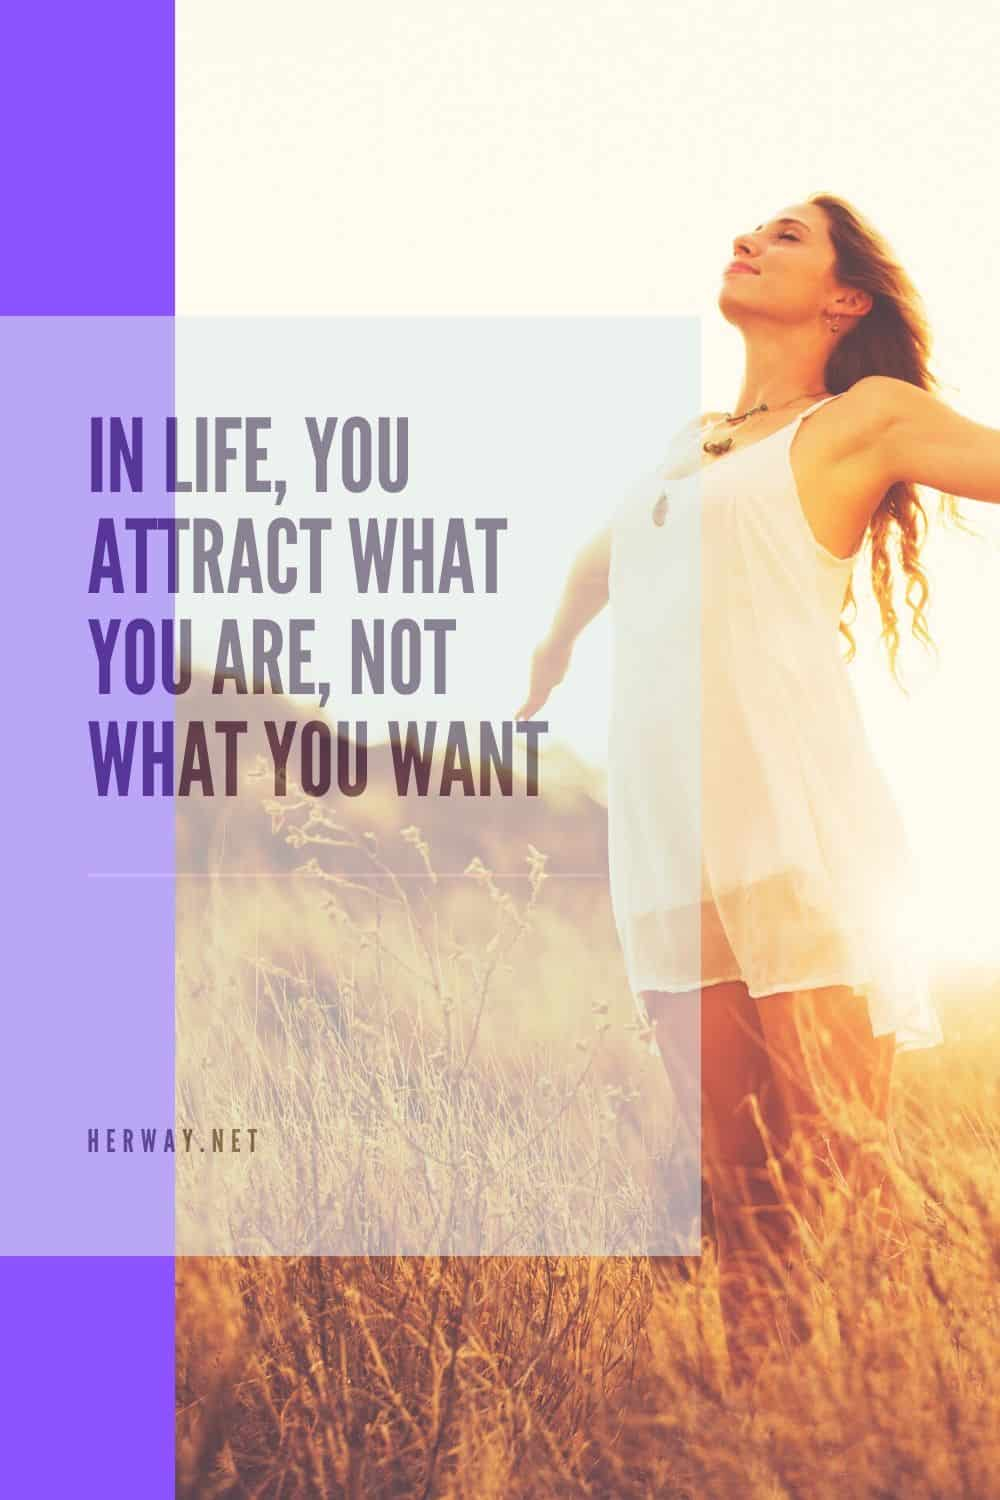 In Life, You Attract What You Are, Not What You Want